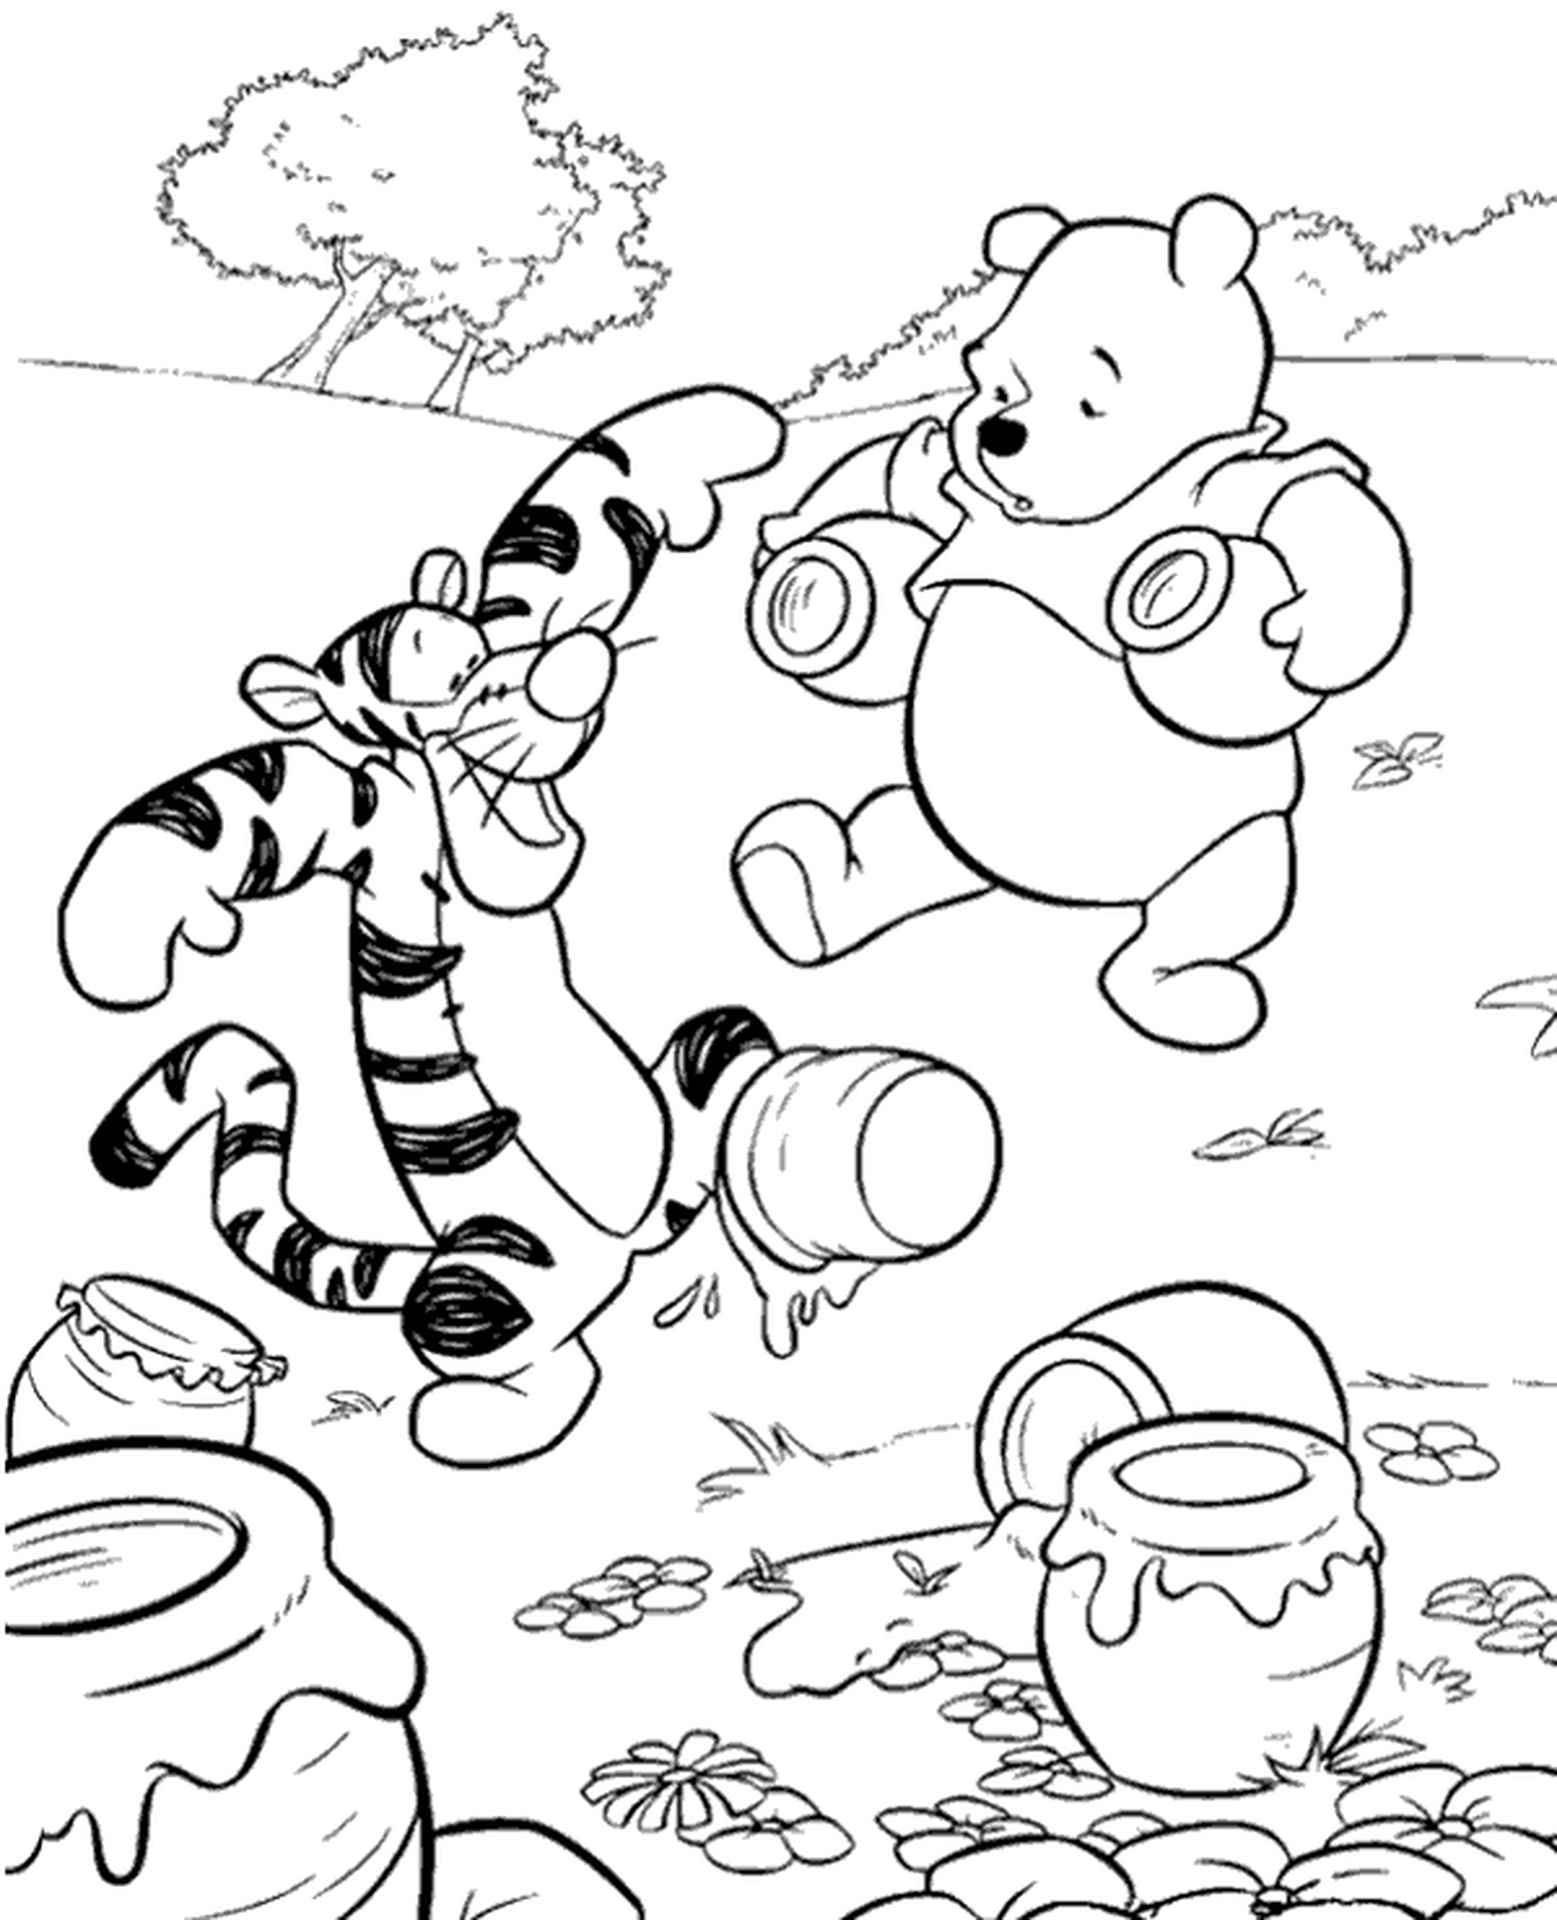 Winnie The Pooh Picture To Print For Kids